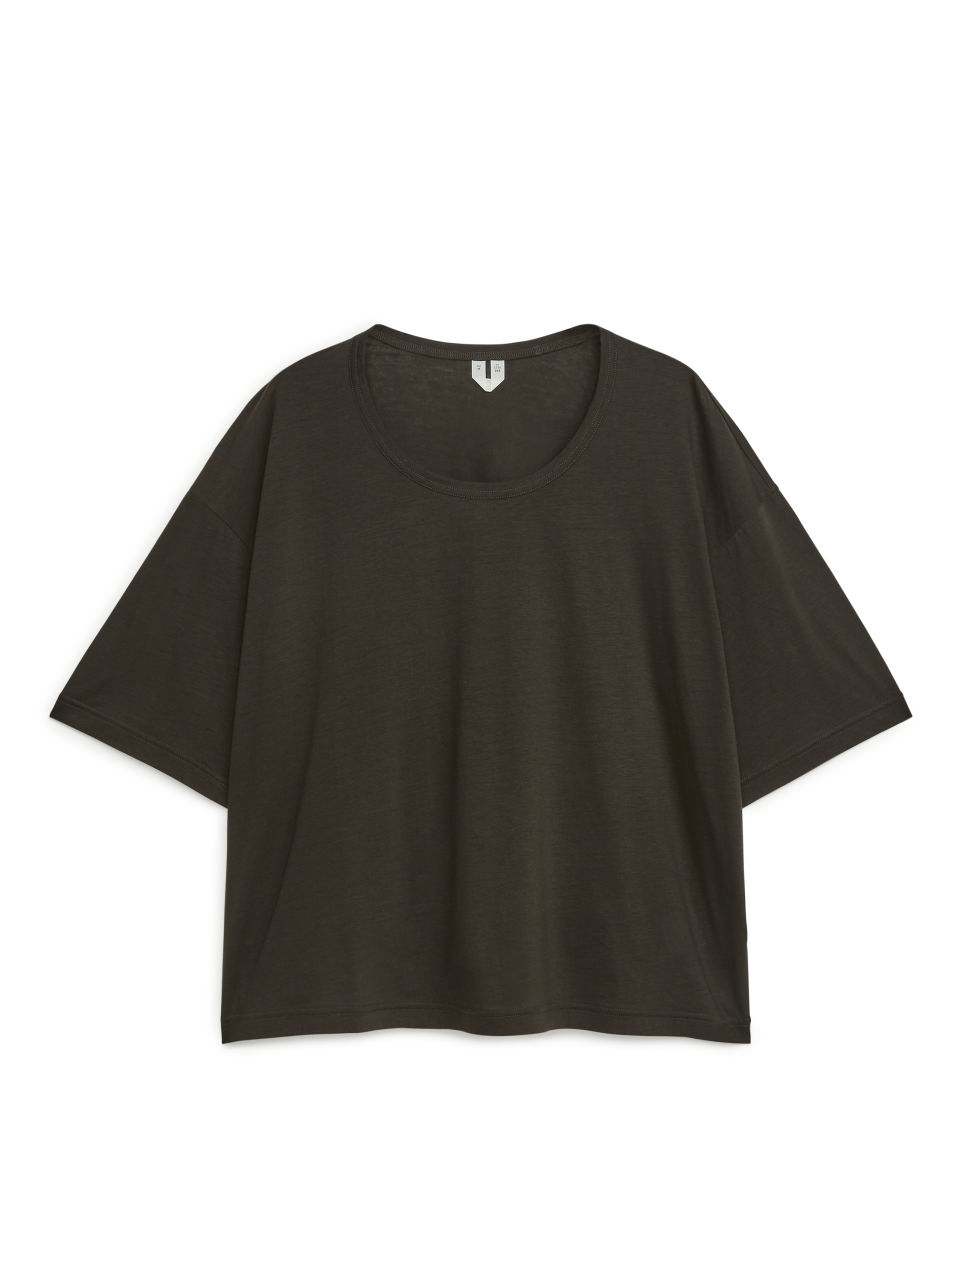 Wide-Fit T-Shirt - Brown